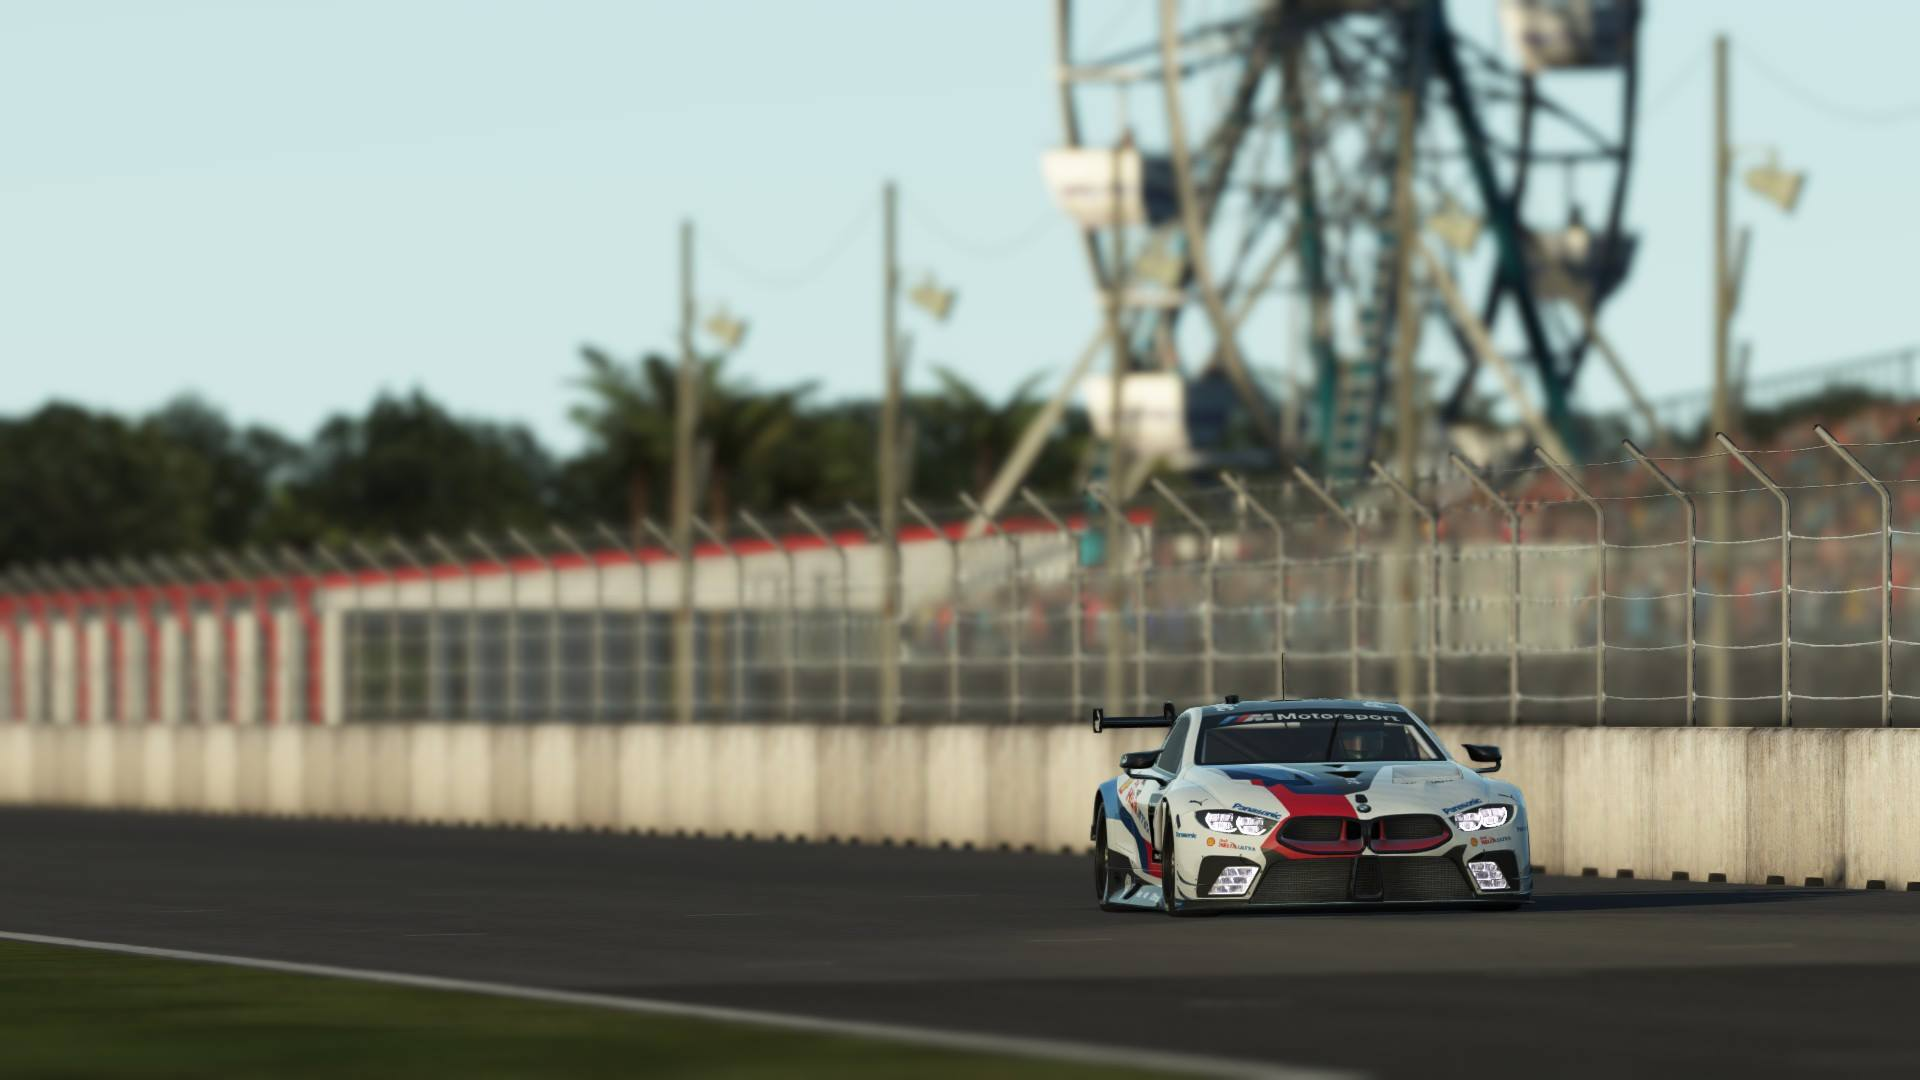 rFactor 2 Endurance Pack BMW M8 GTE preview 2